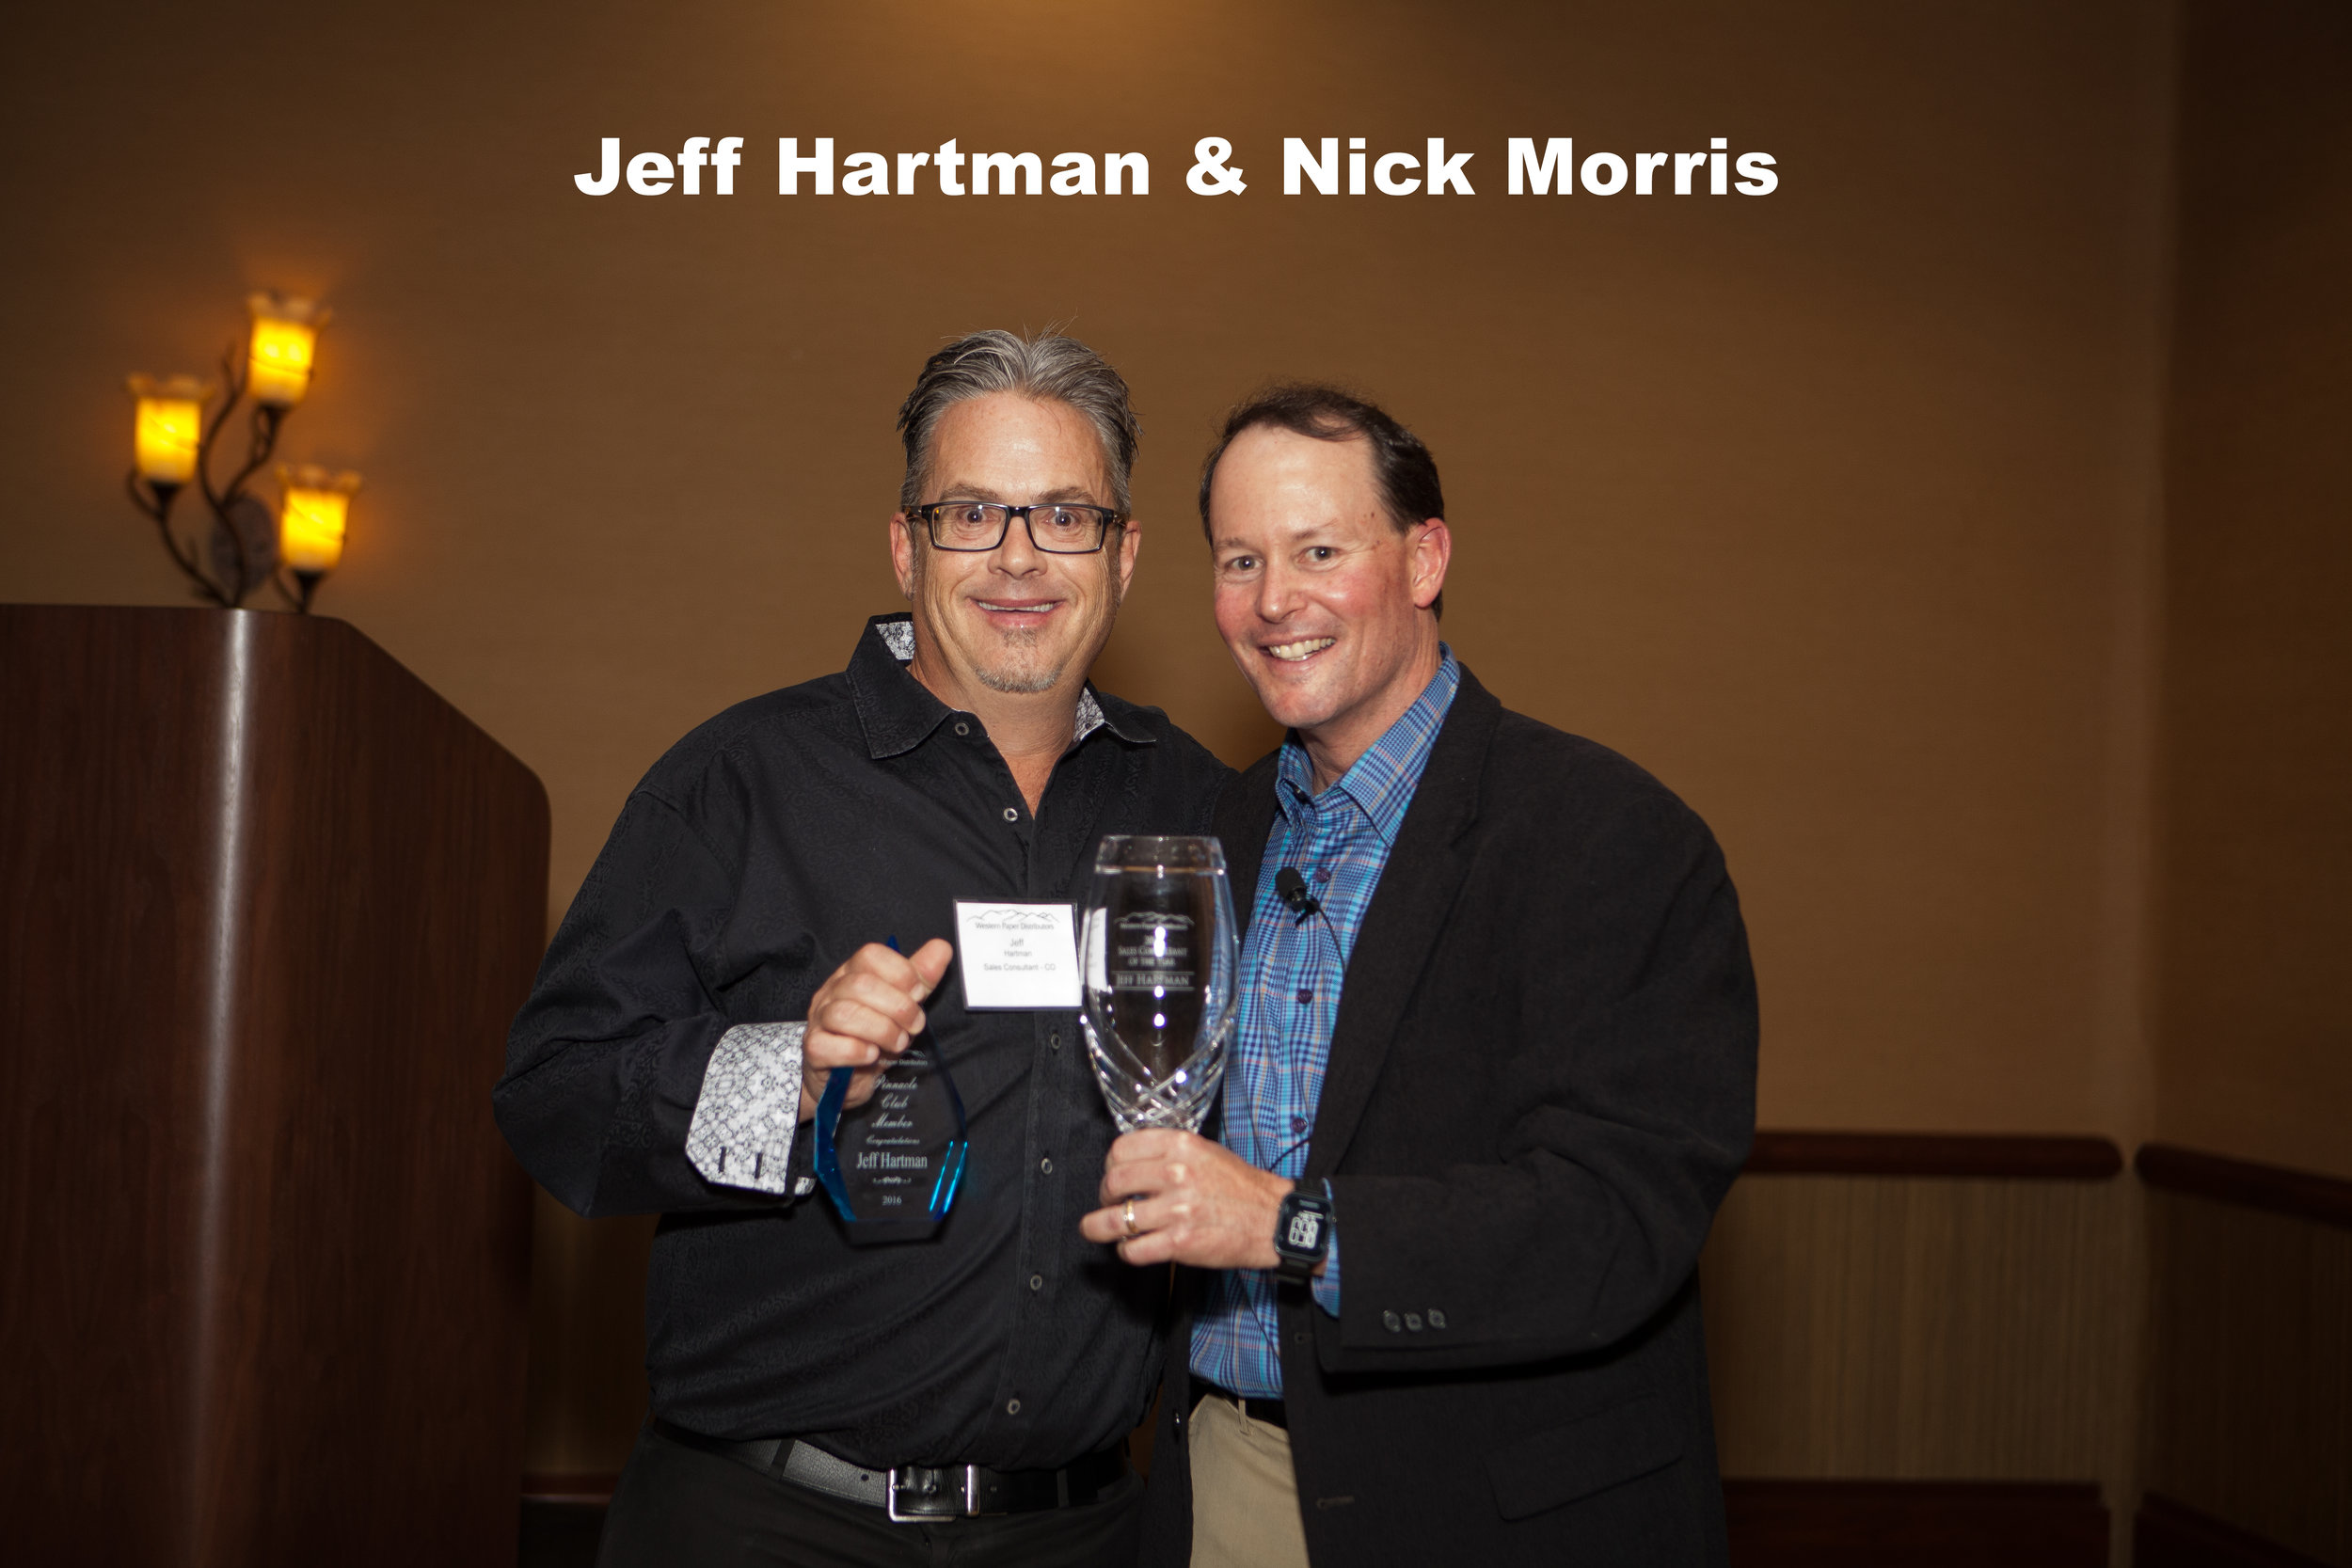 - 2016 Sales Consultant of the YearJeff Hartman